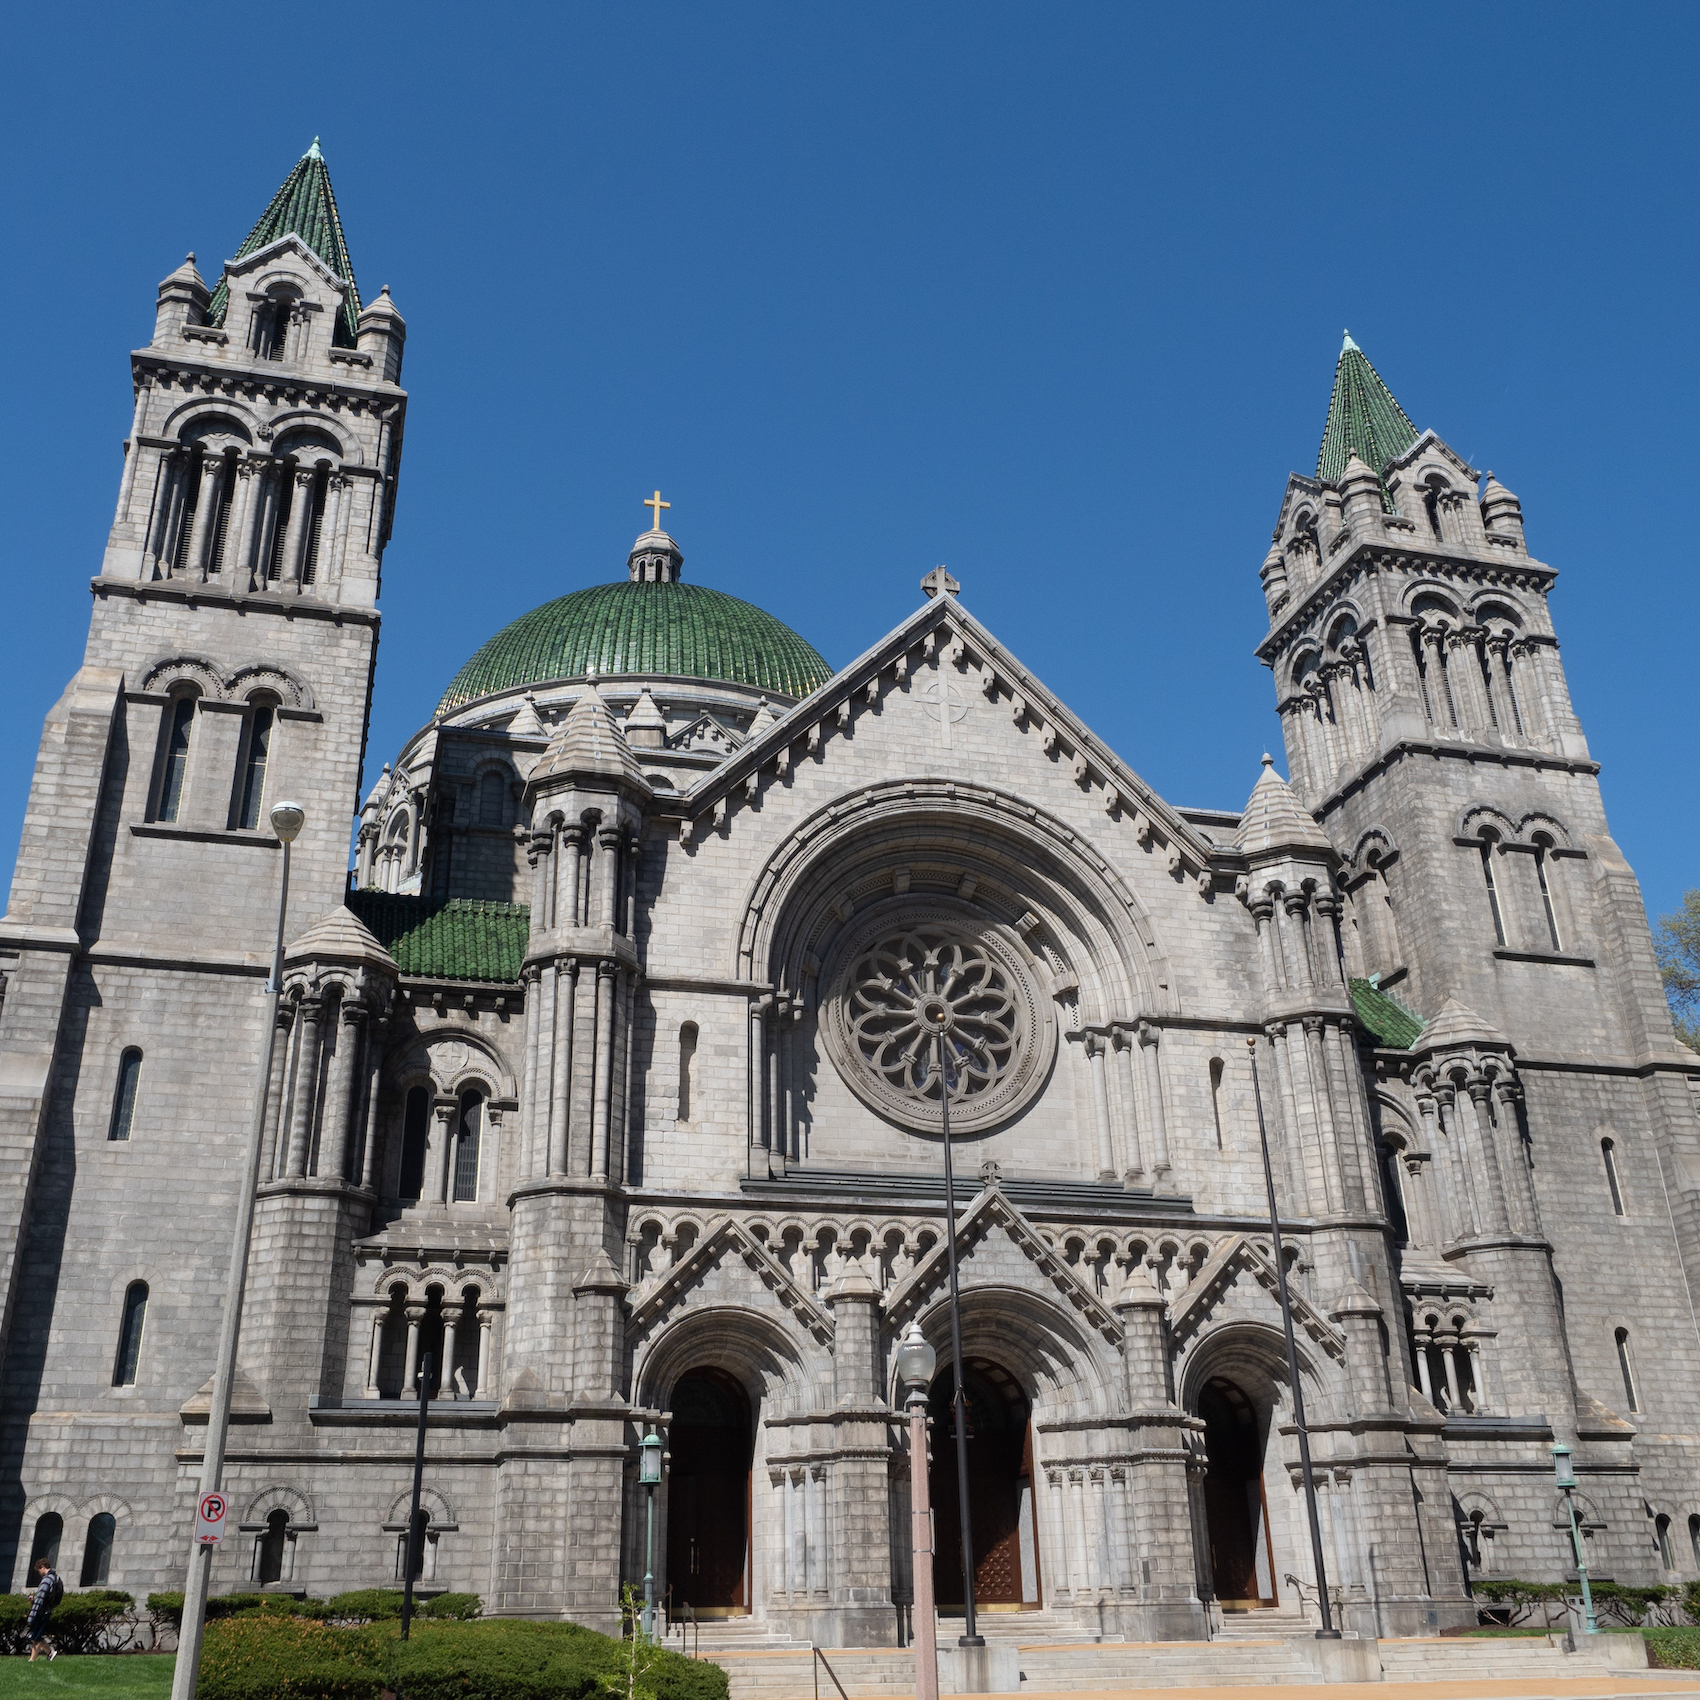 The Cathedral Basilica of St. Louis in Missouri.